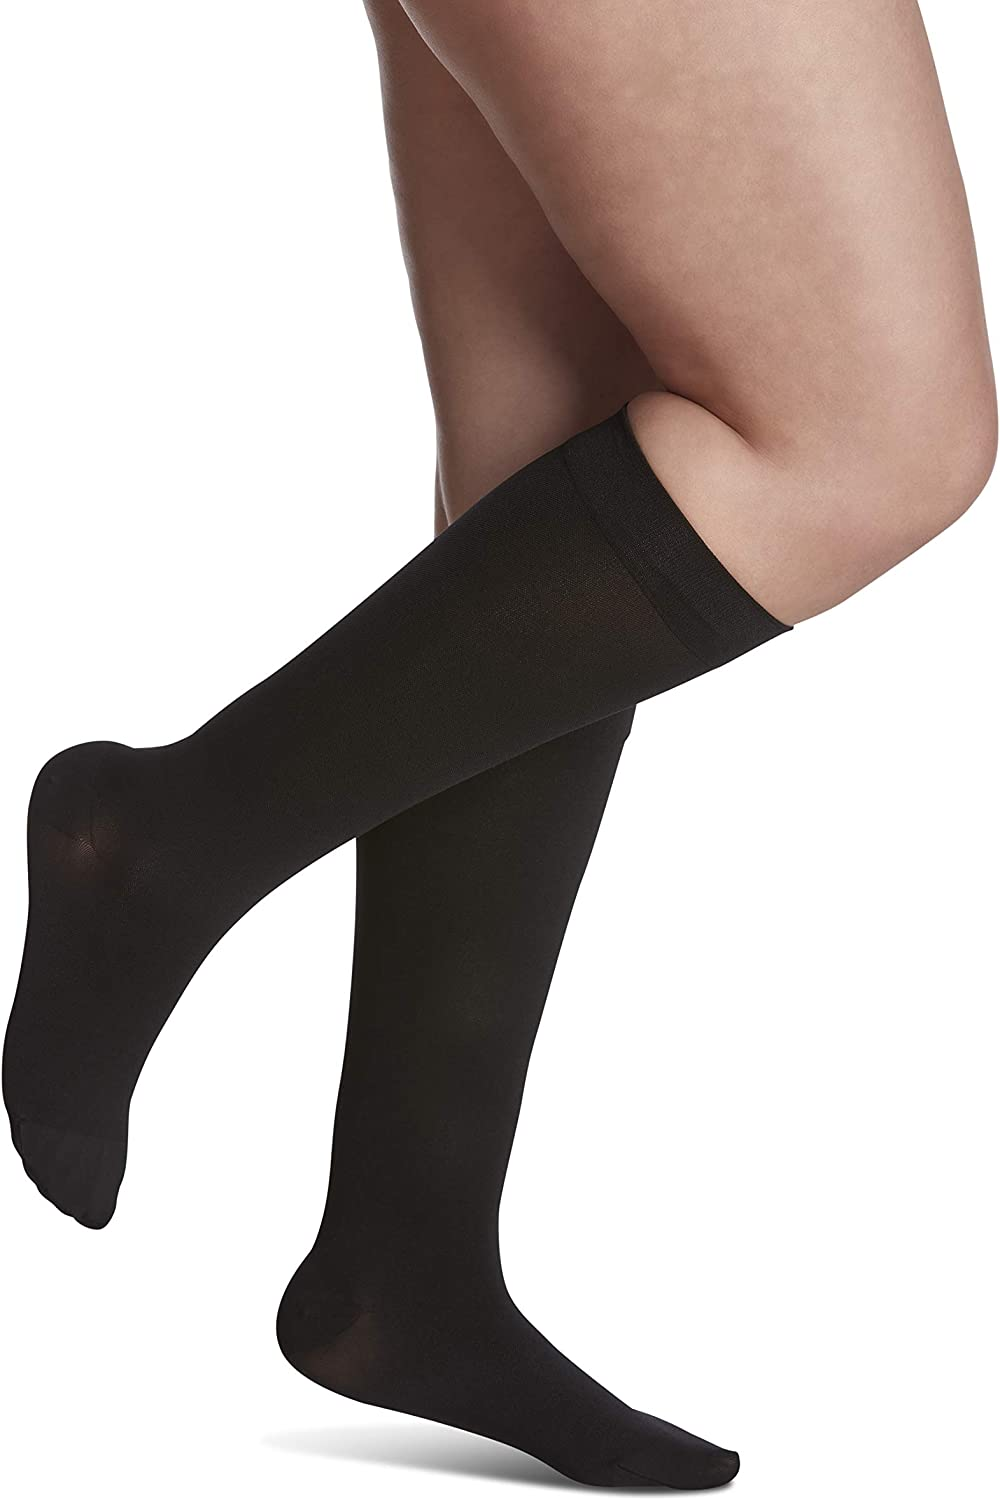 online shop SIGVARIS Women's Style Limited Special Price Soft Opaque Sock Closed 840 Toe Calf-High